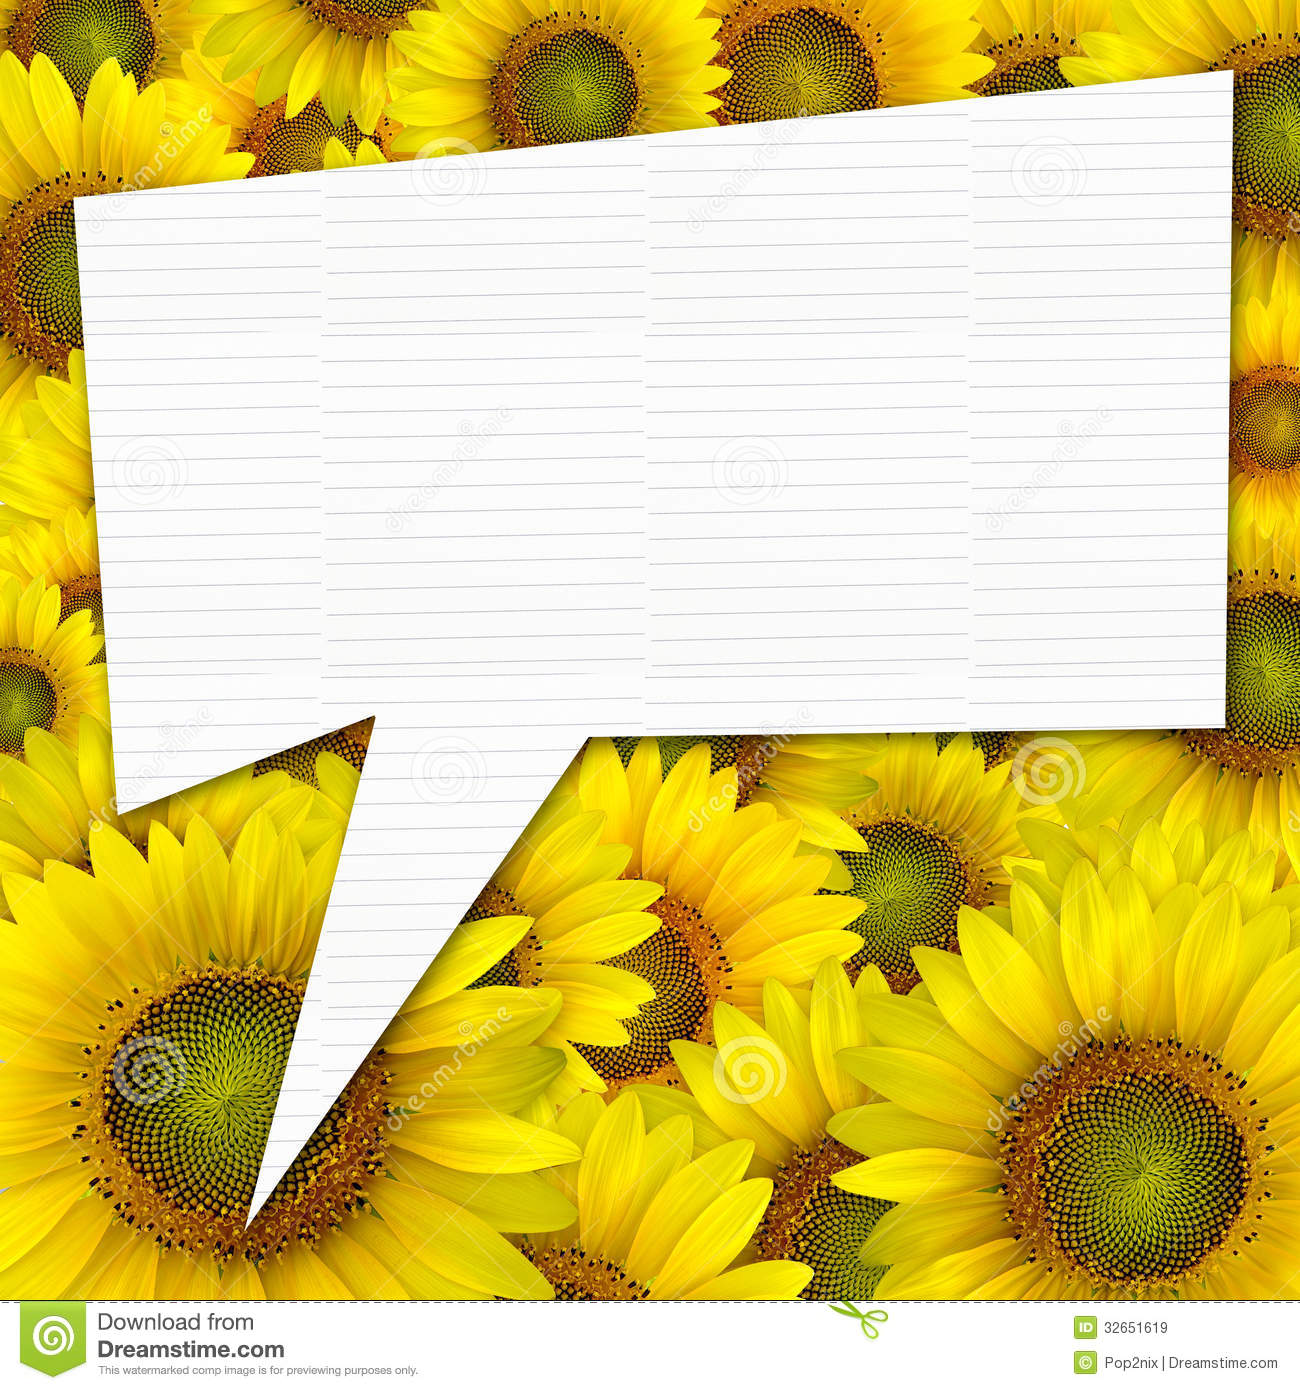 Beautiful Yellow Sunflower Petals Closeup Background With Quote